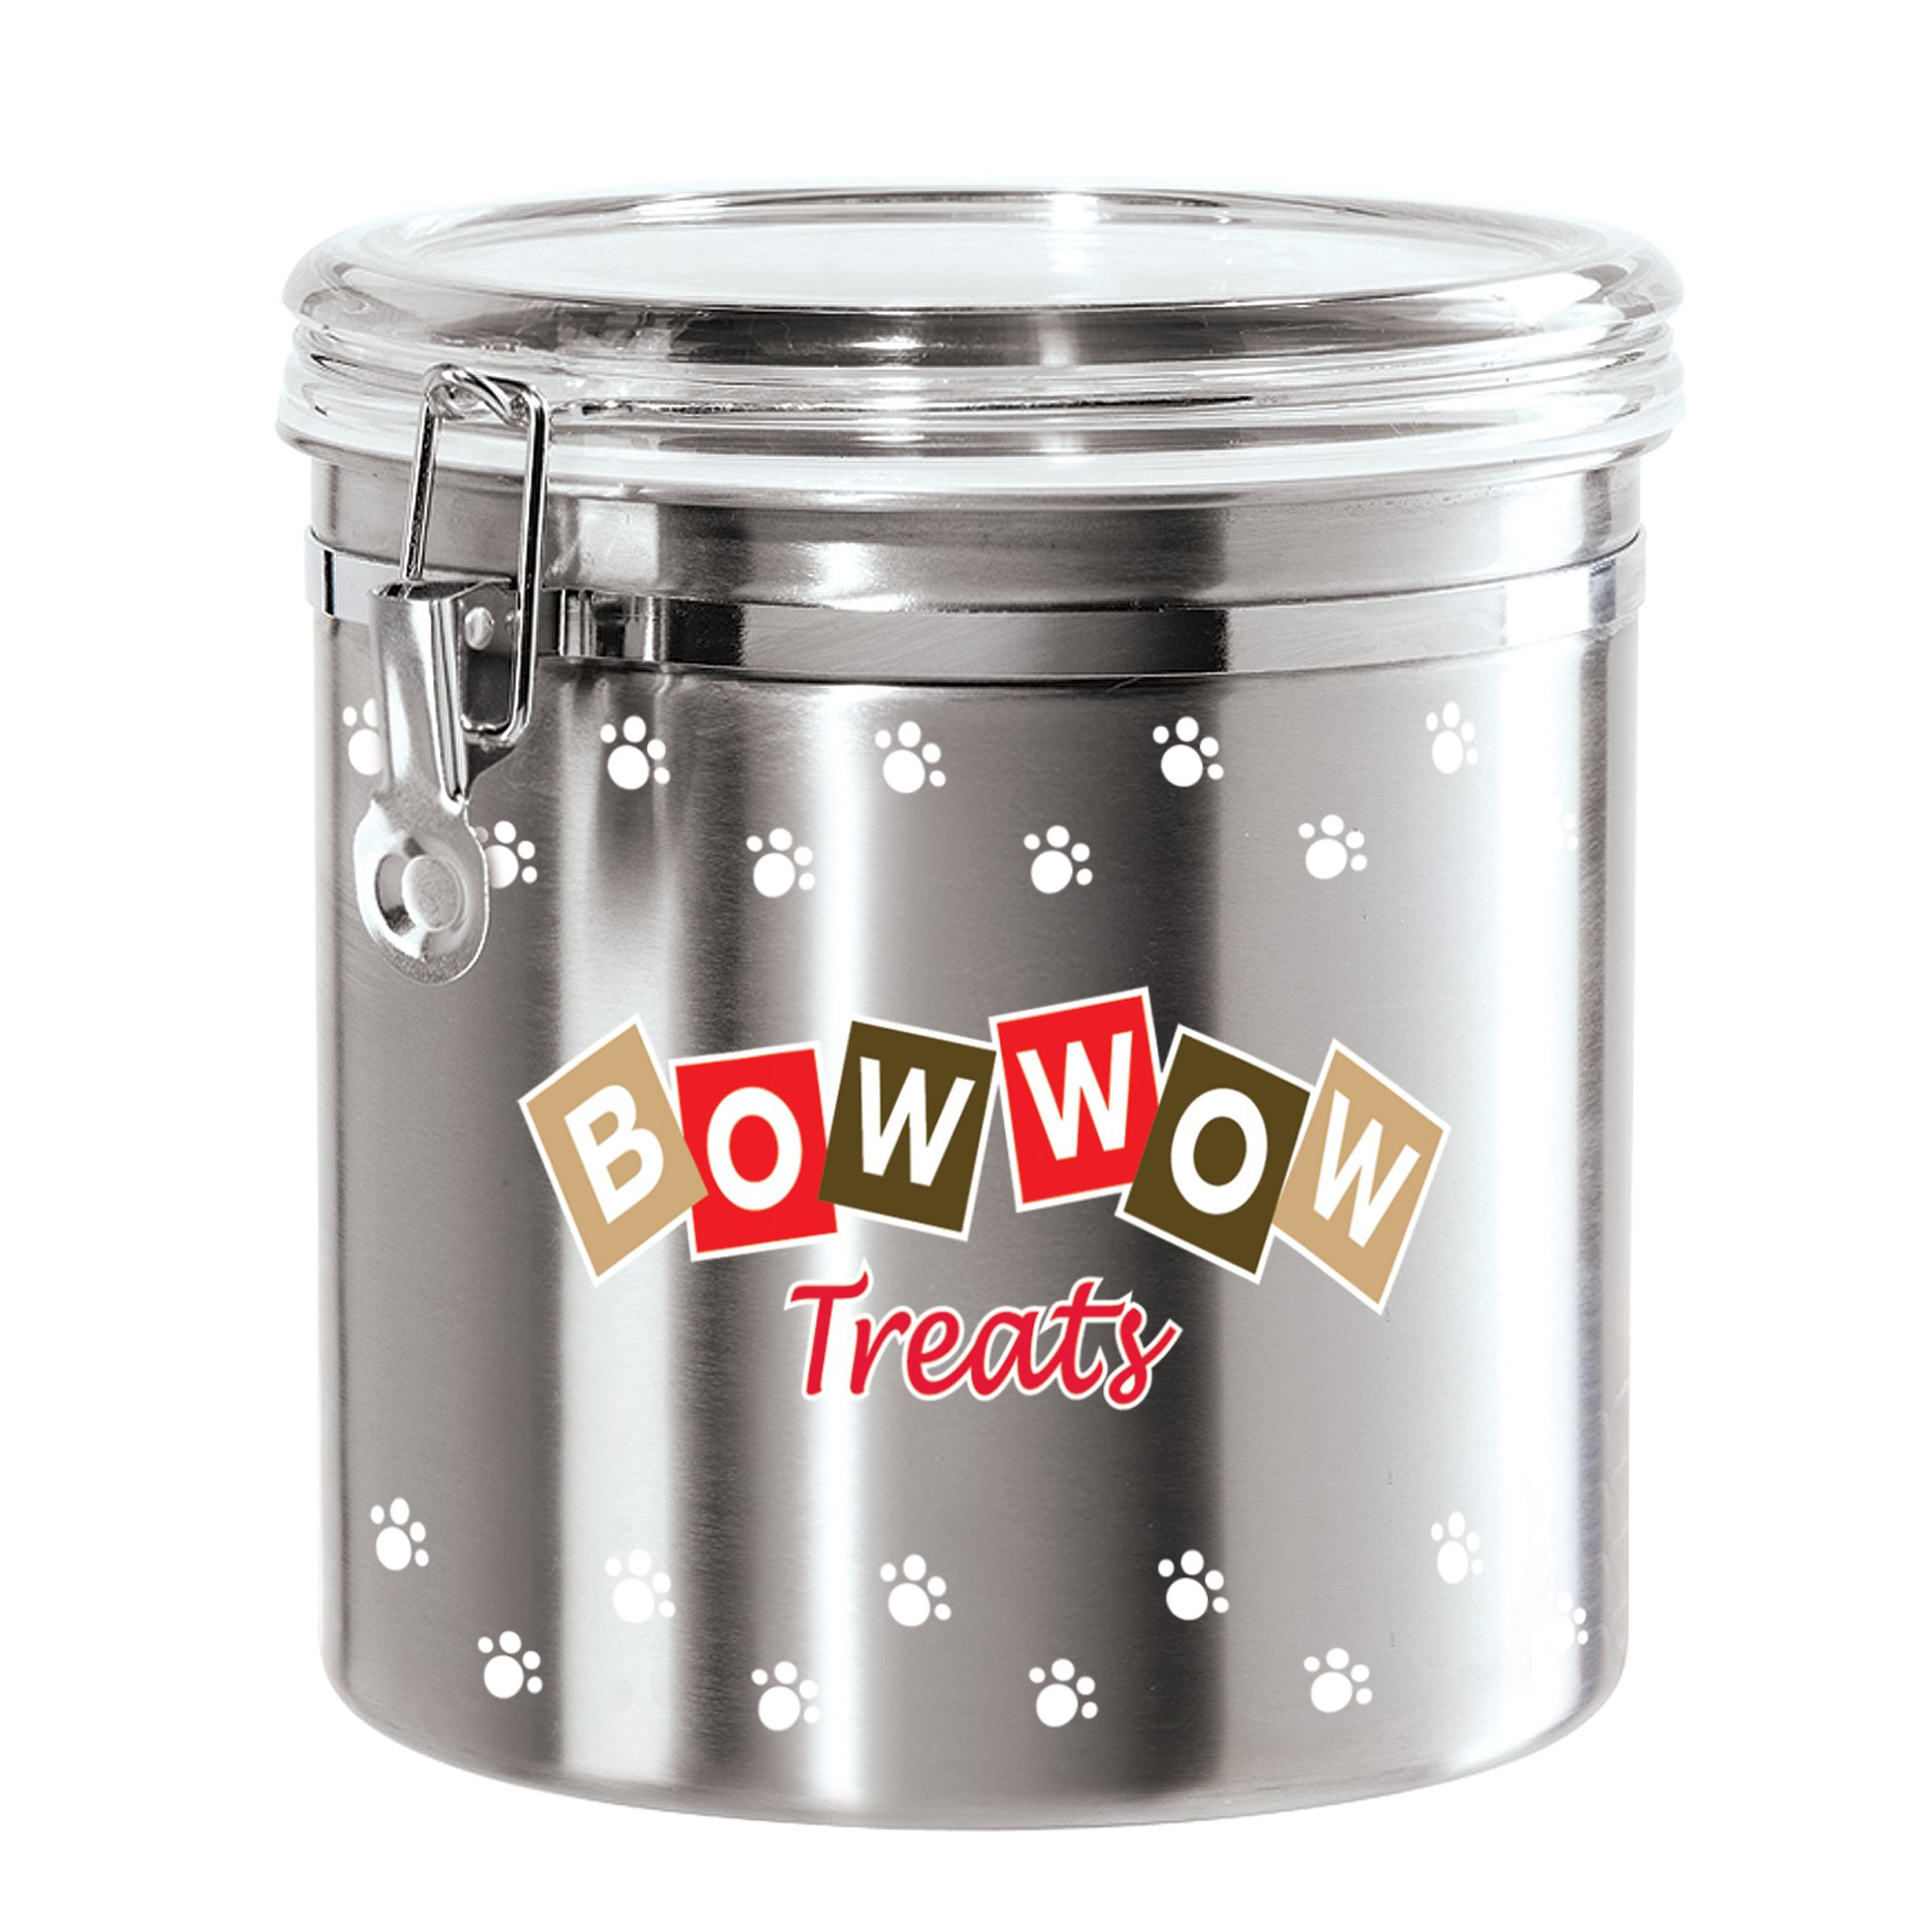 Oggi 8314 Jumbo Airtight Stainless Steel Pet Treat Canister with Bow Wow Motif-Clear Acrylic Flip-Top Lid and Locking Clamp Closure, 130 oz, Silver